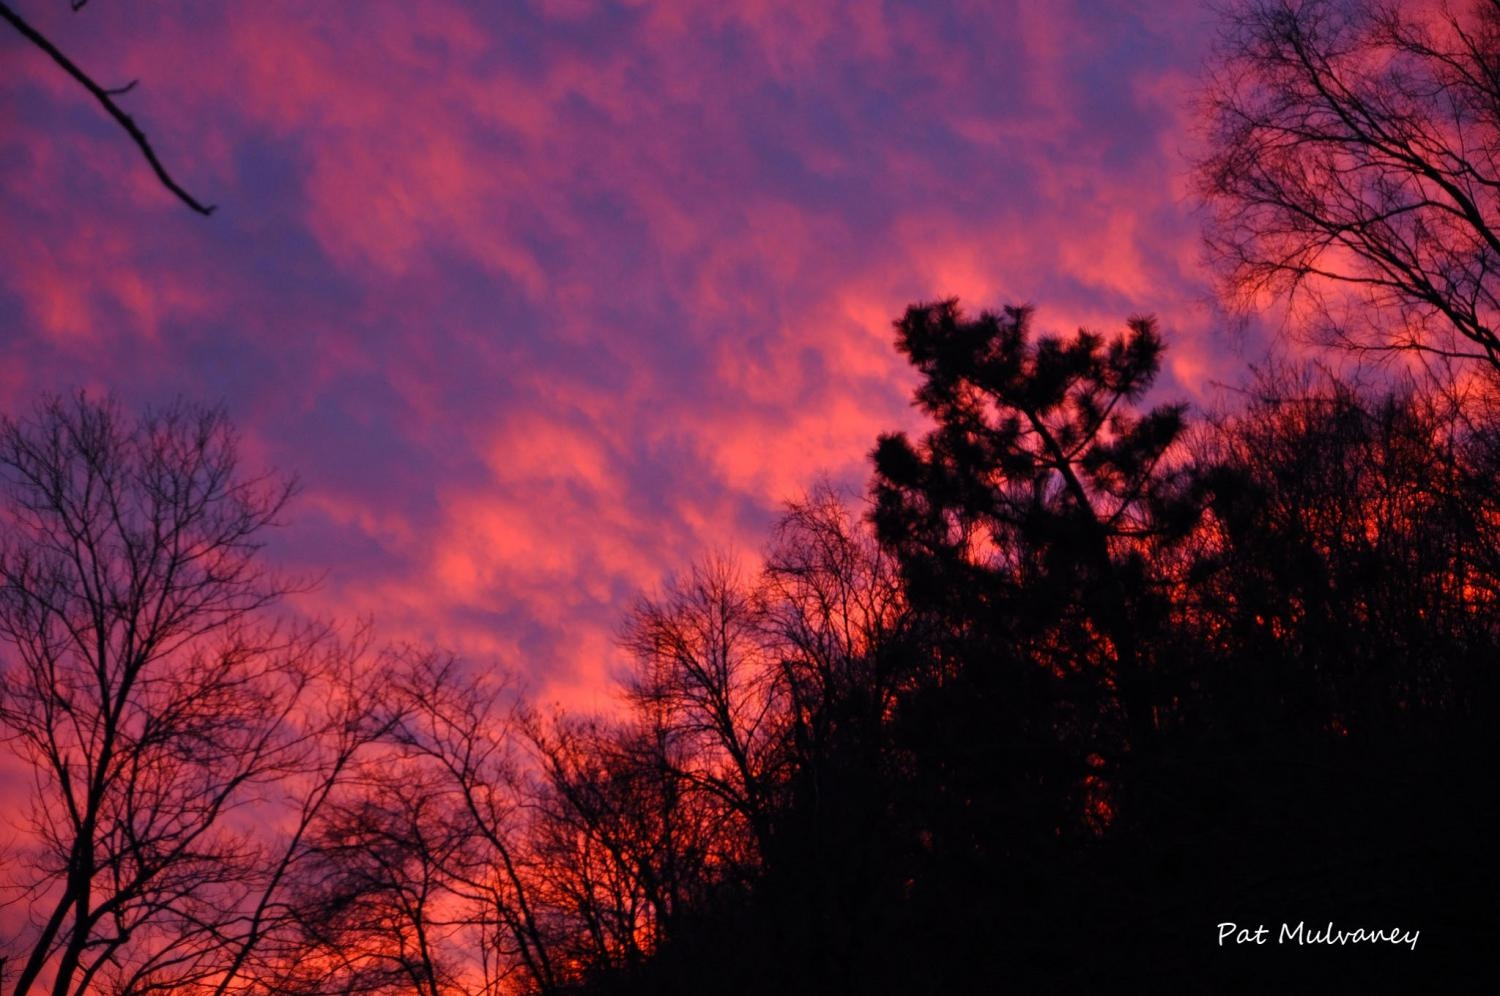 """Evening Sky"" by Pat Mulvaney"